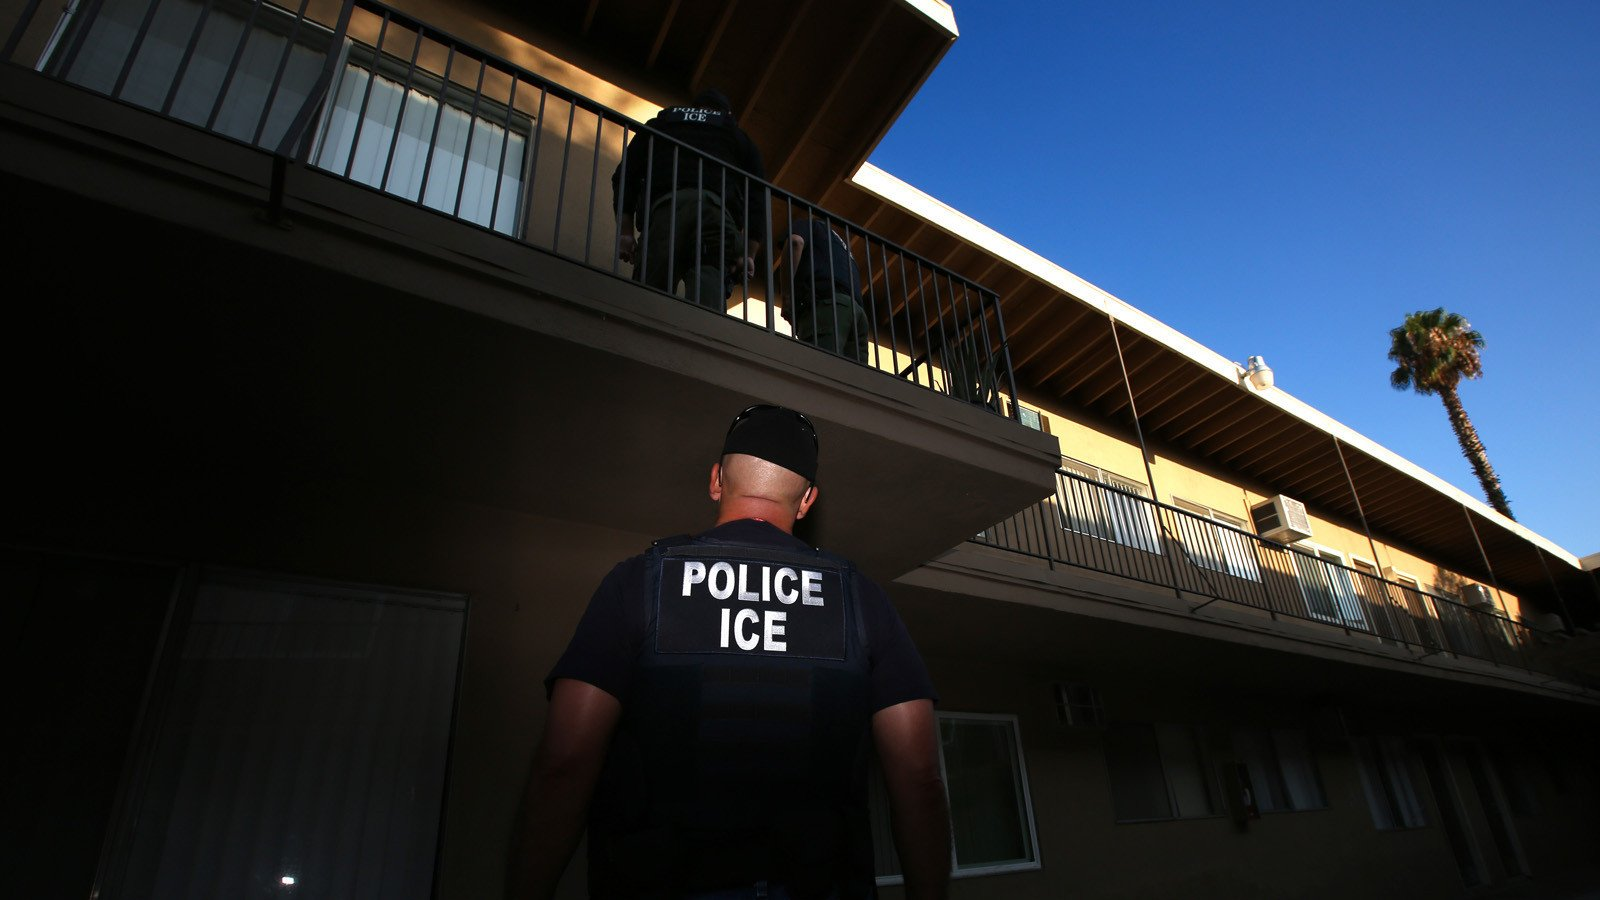 Abolishing ICE Looks Likely To Become 2020 Campaign Issue For Democrats